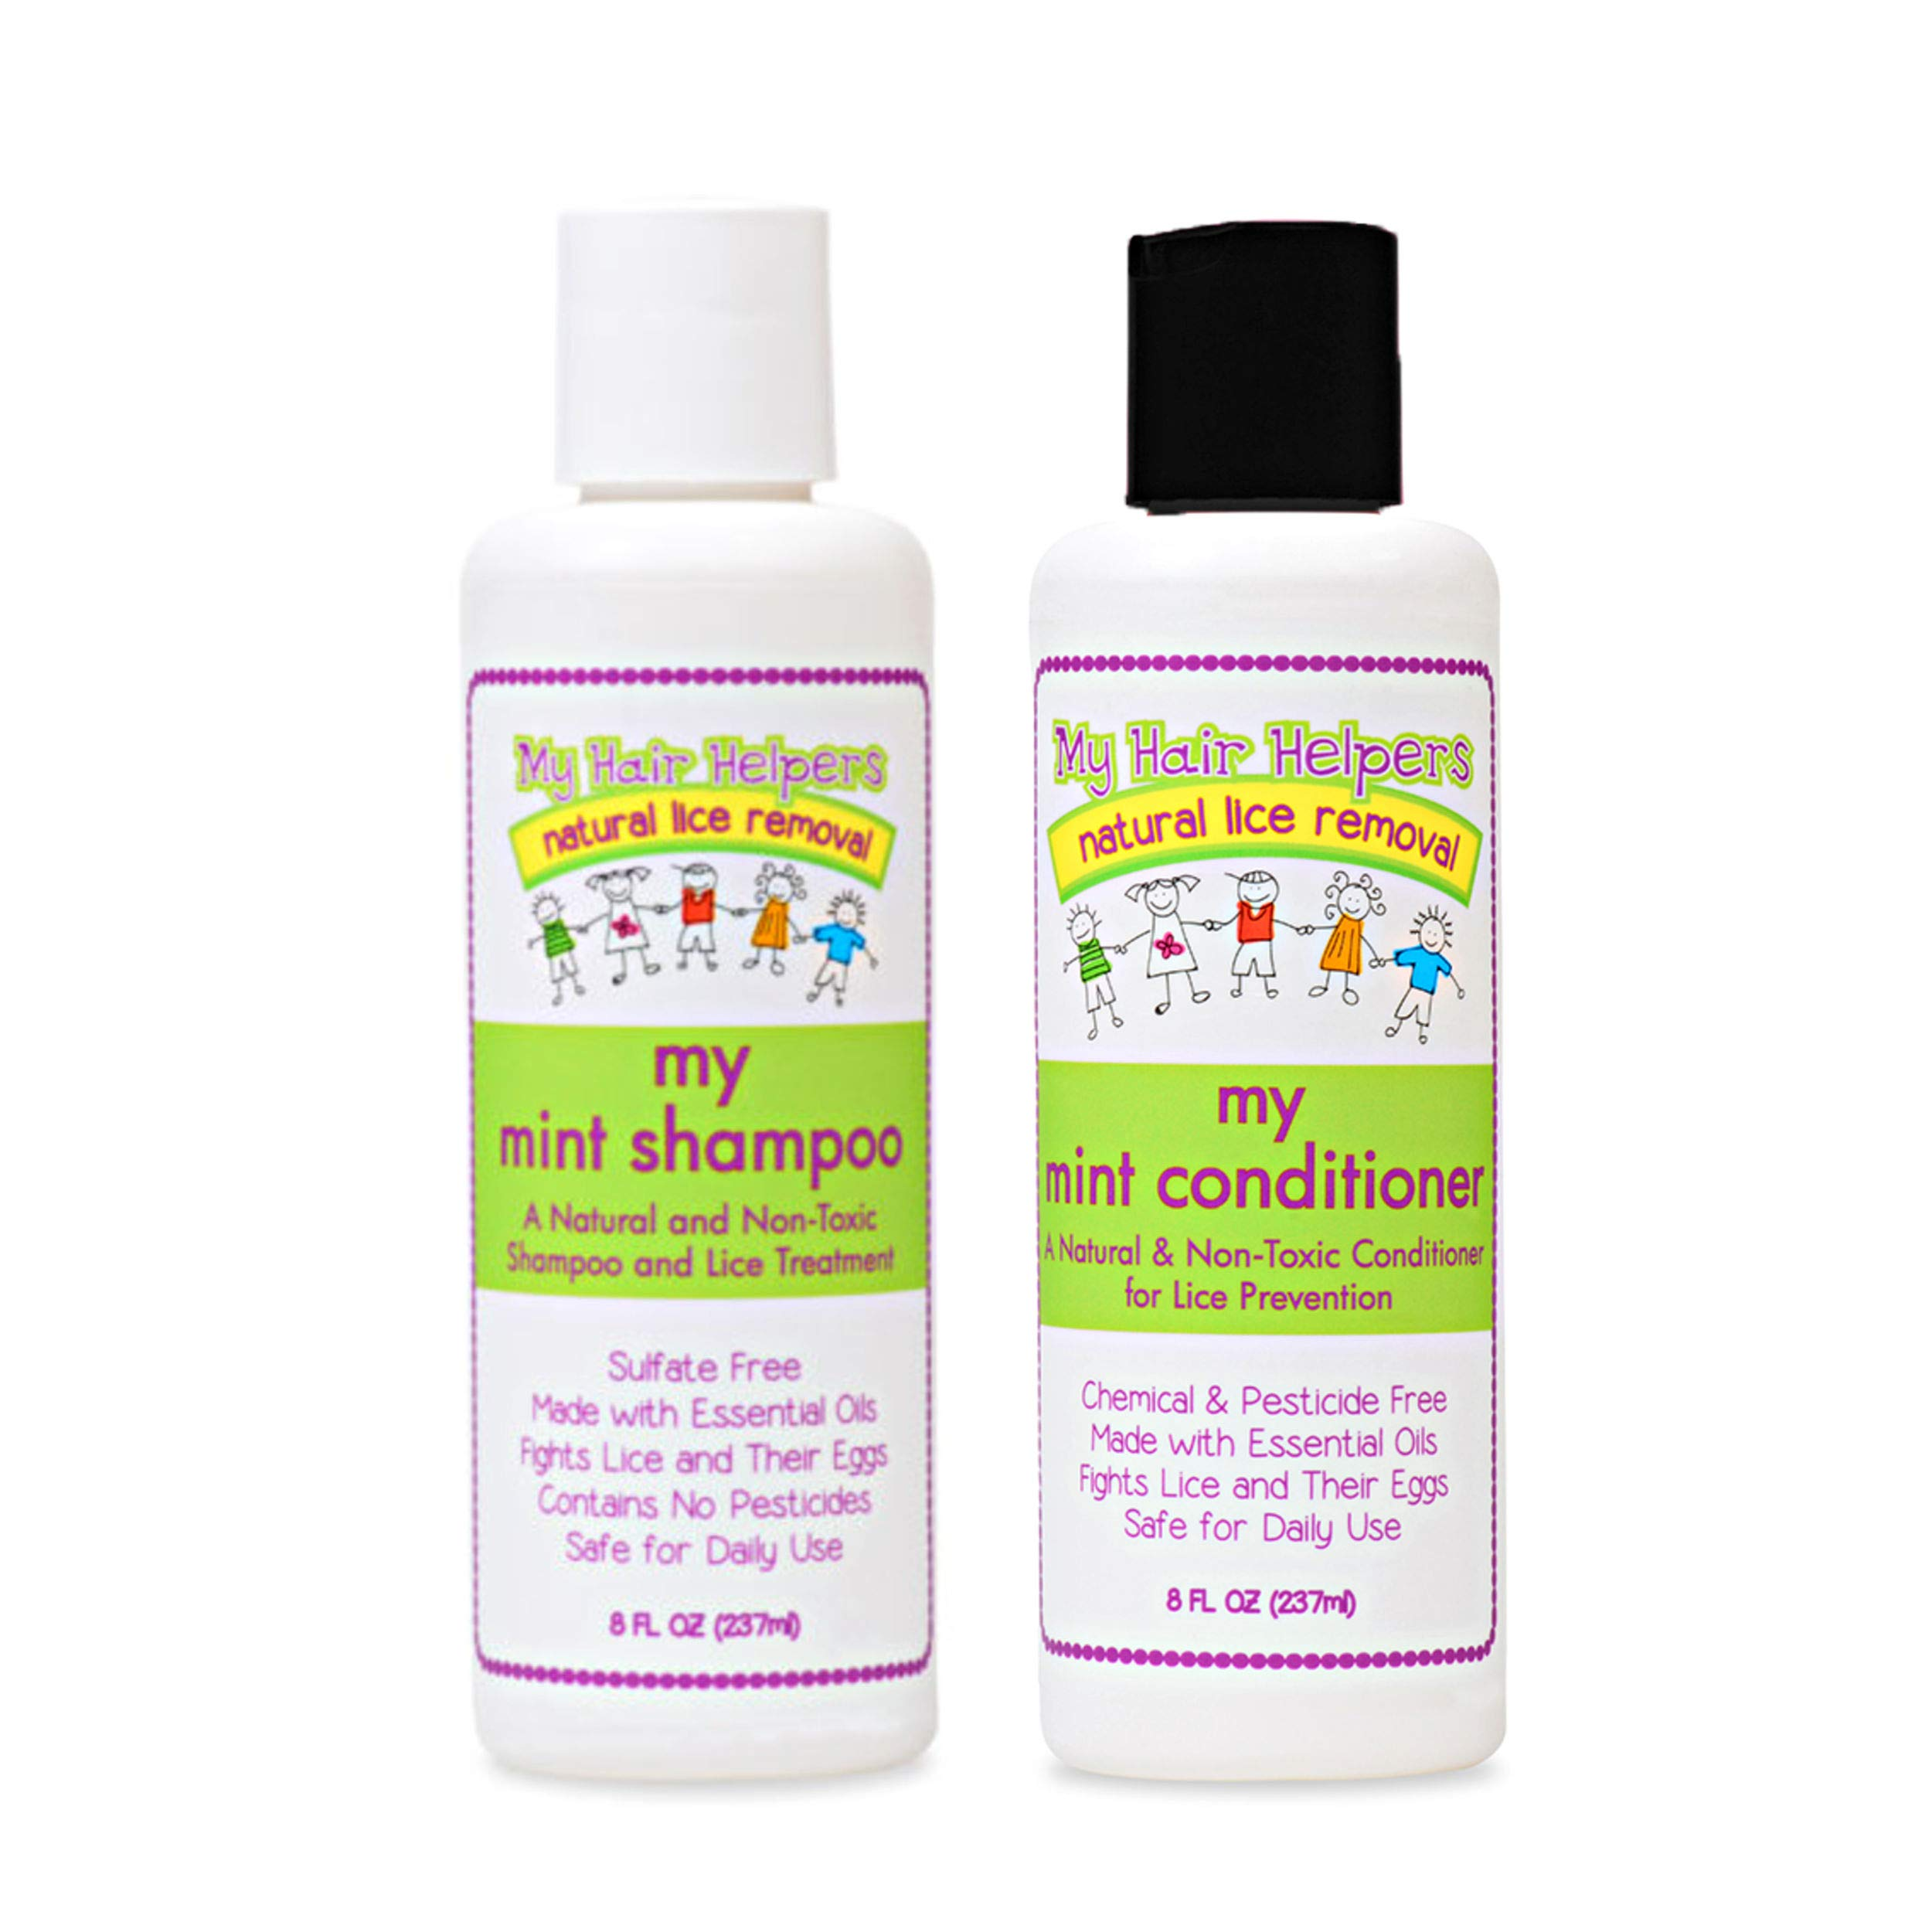 Lice Prevention Shampoo and Conditioner That Kills Lice and Eggs for Kids I Peppermint Essential Oil I Use Daily to Get Rid of Lice and Stay Nit-Free I 8 Ounces Each by MY HAIR HELPERS NATURAL LICE REMOVAL